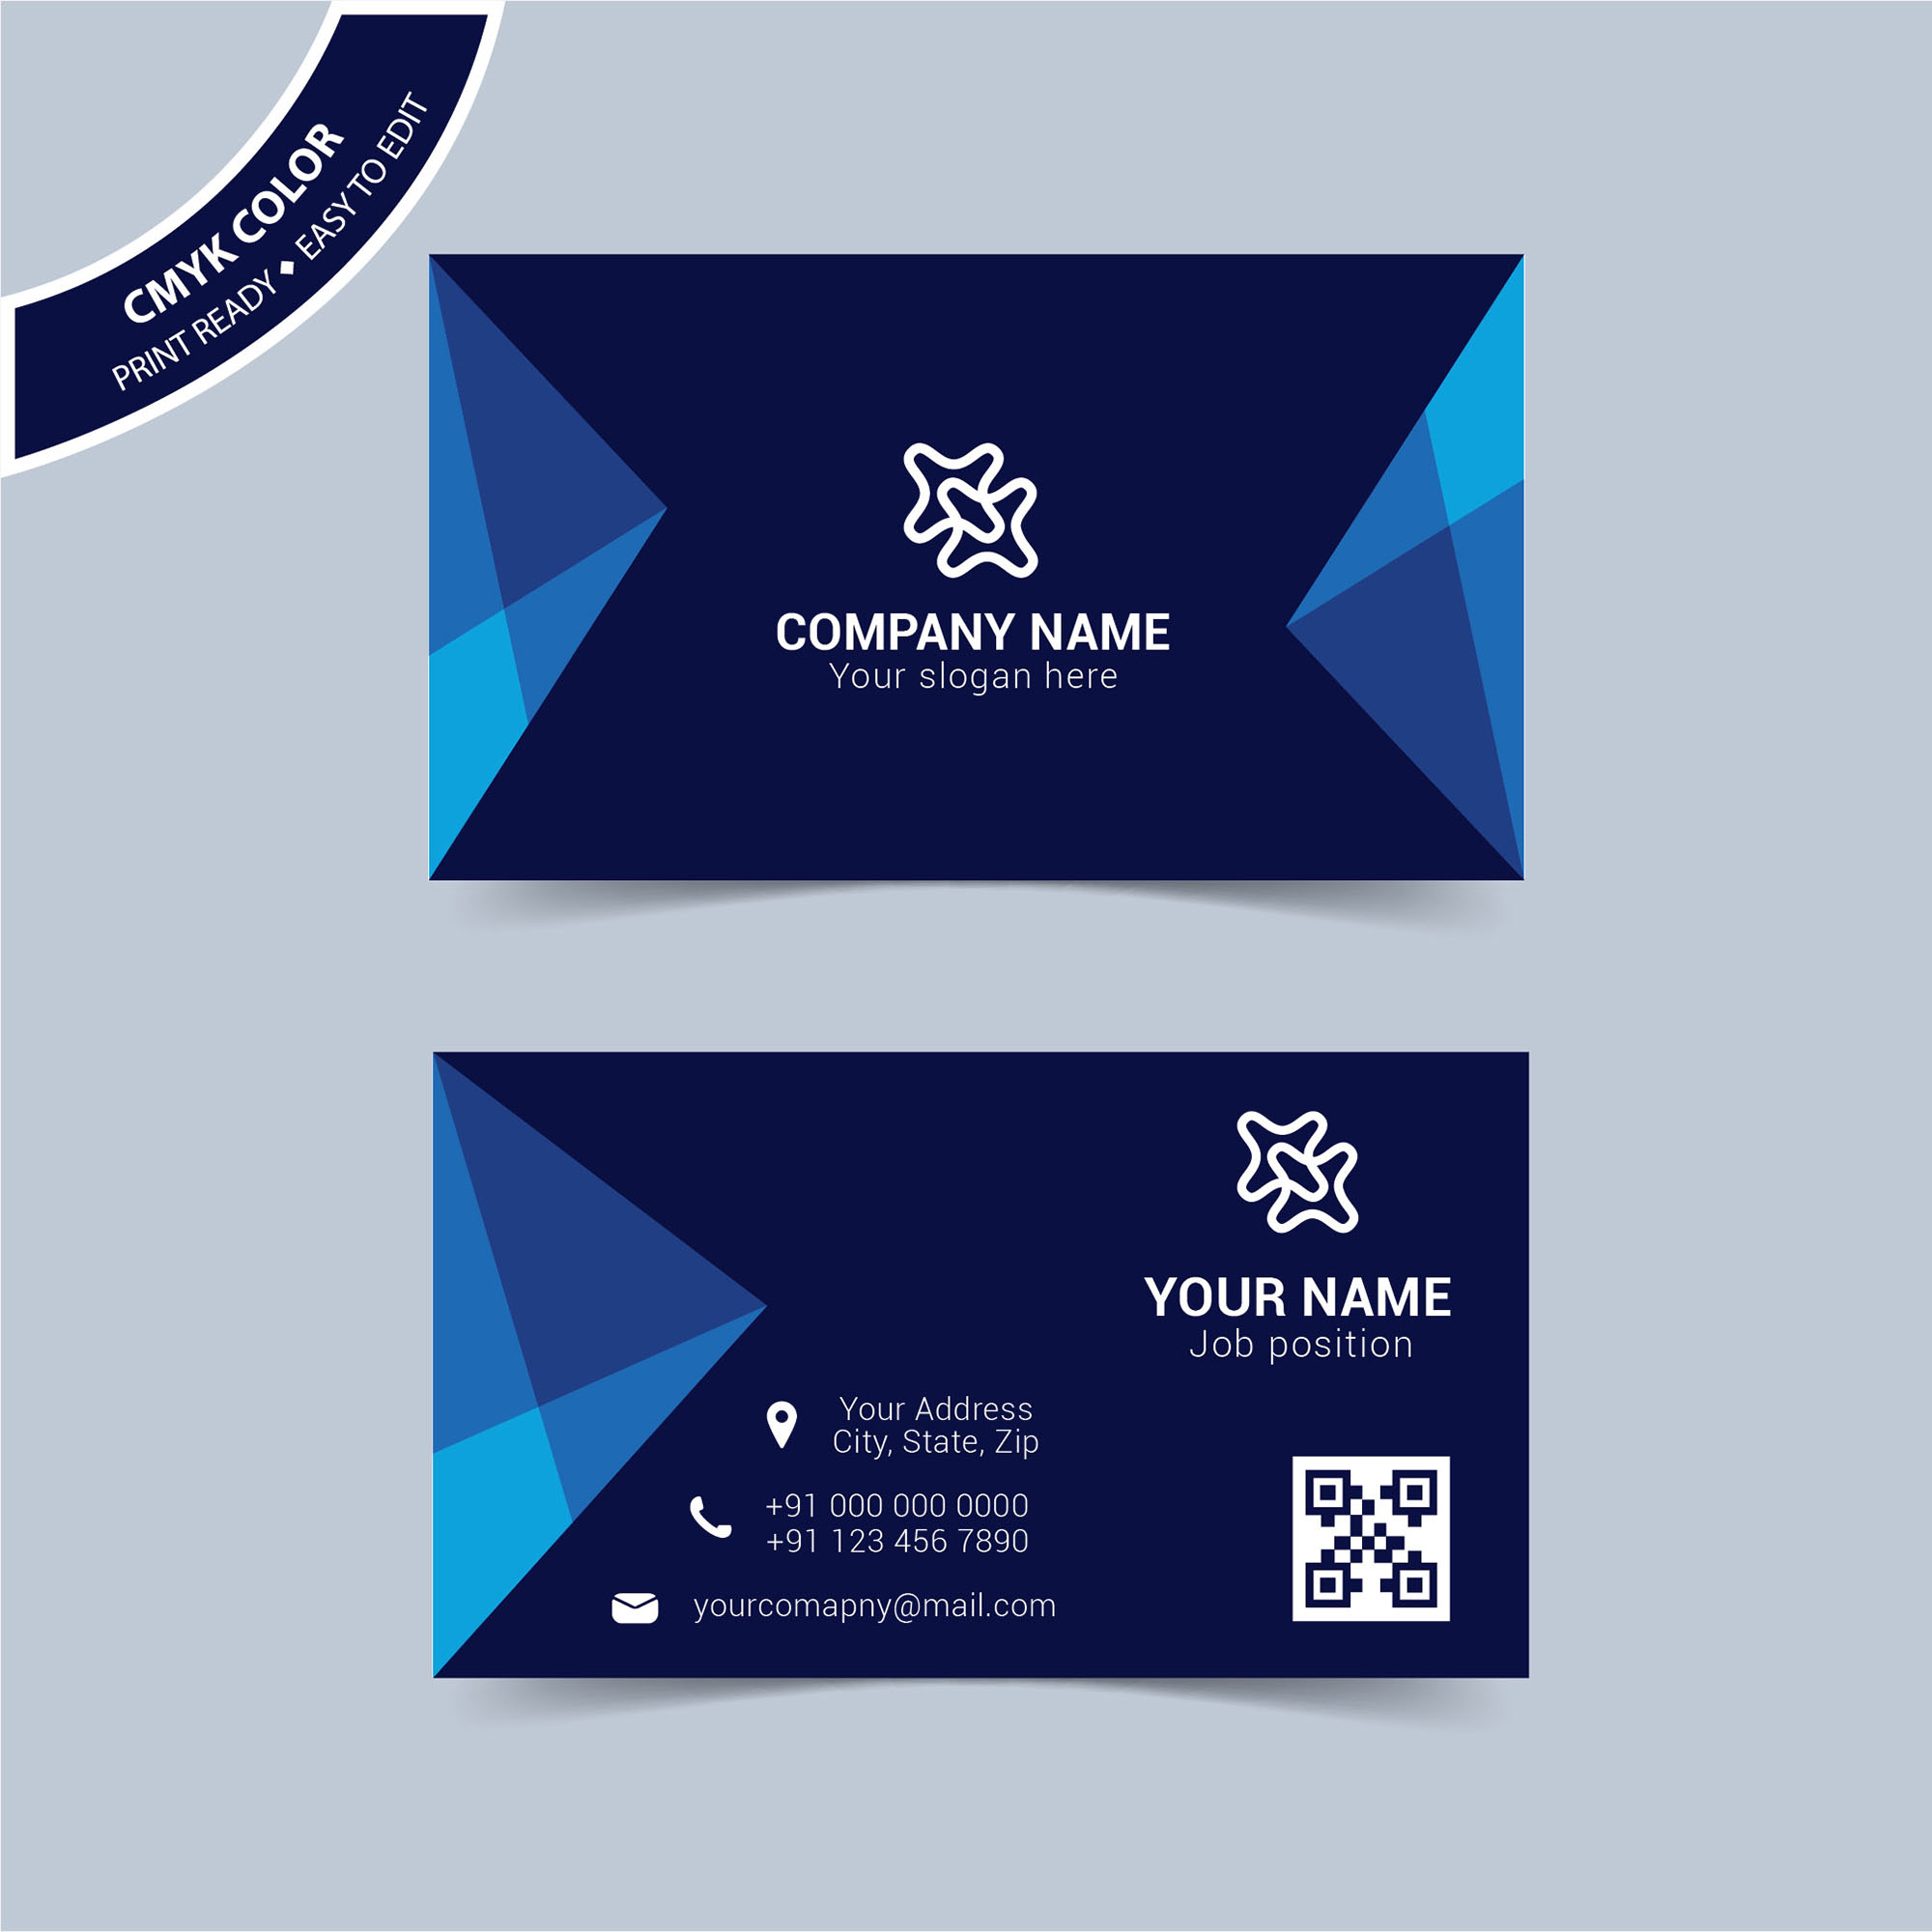 Modern blue business card template free download wisxi business card business cards business card design business card template design templates maxwellsz